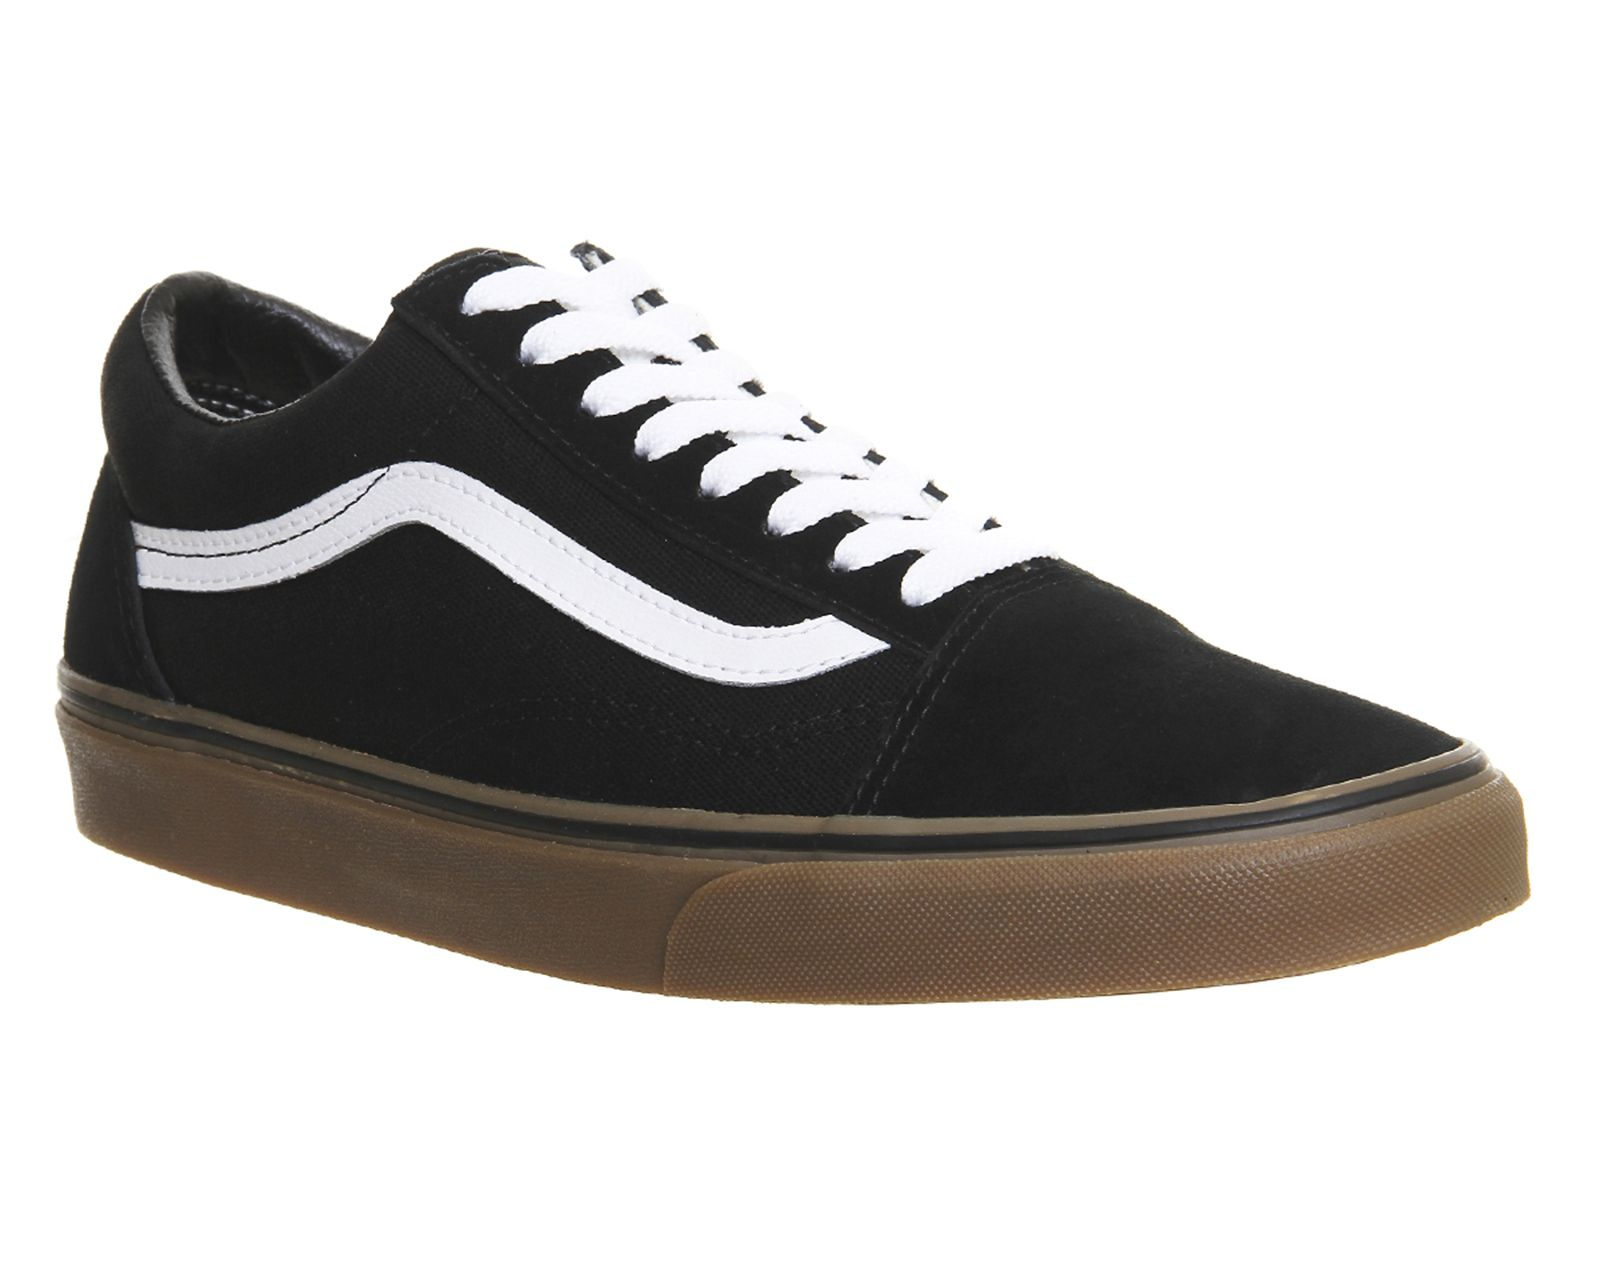 e989de8c86 Mens Vans Old Skool BLACK GUM SOLE Trainers Shoes